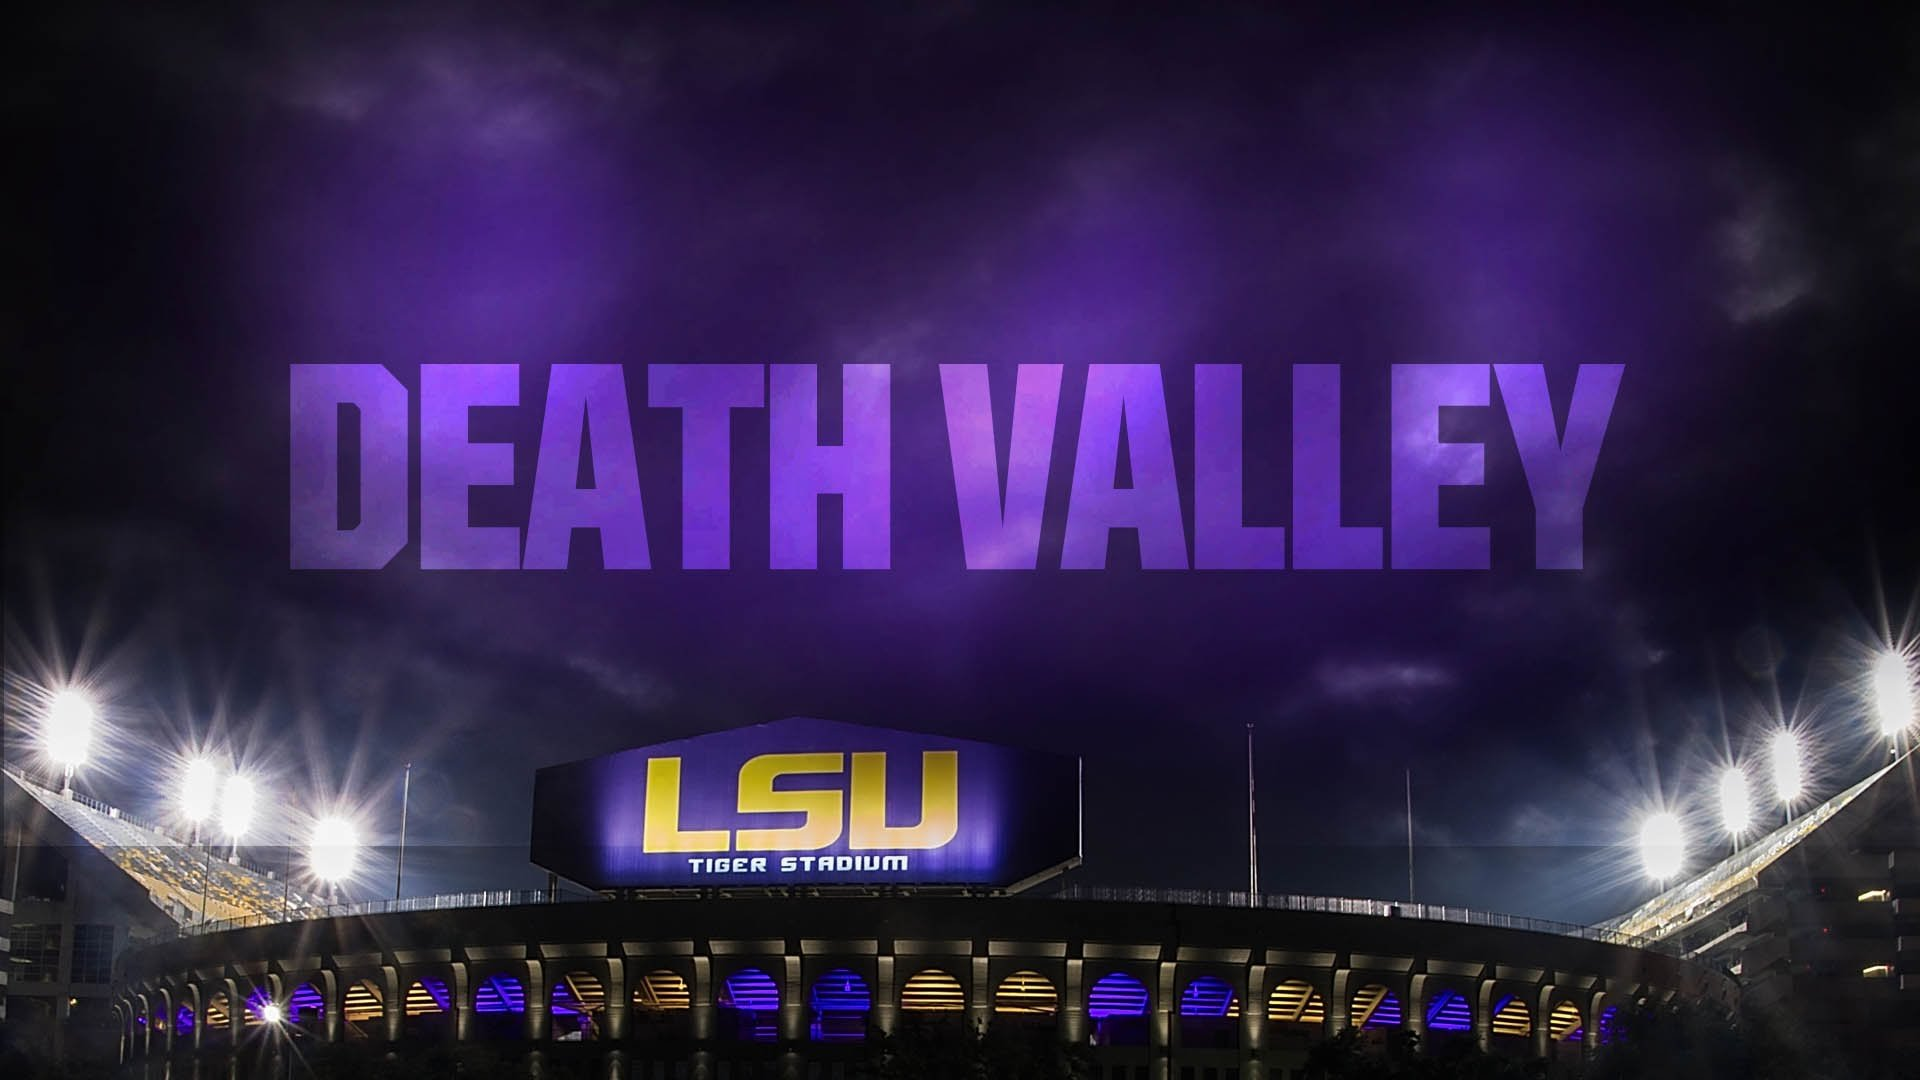 LSU TIGERS college football wallpaper 1920x1080 595554 1920x1080